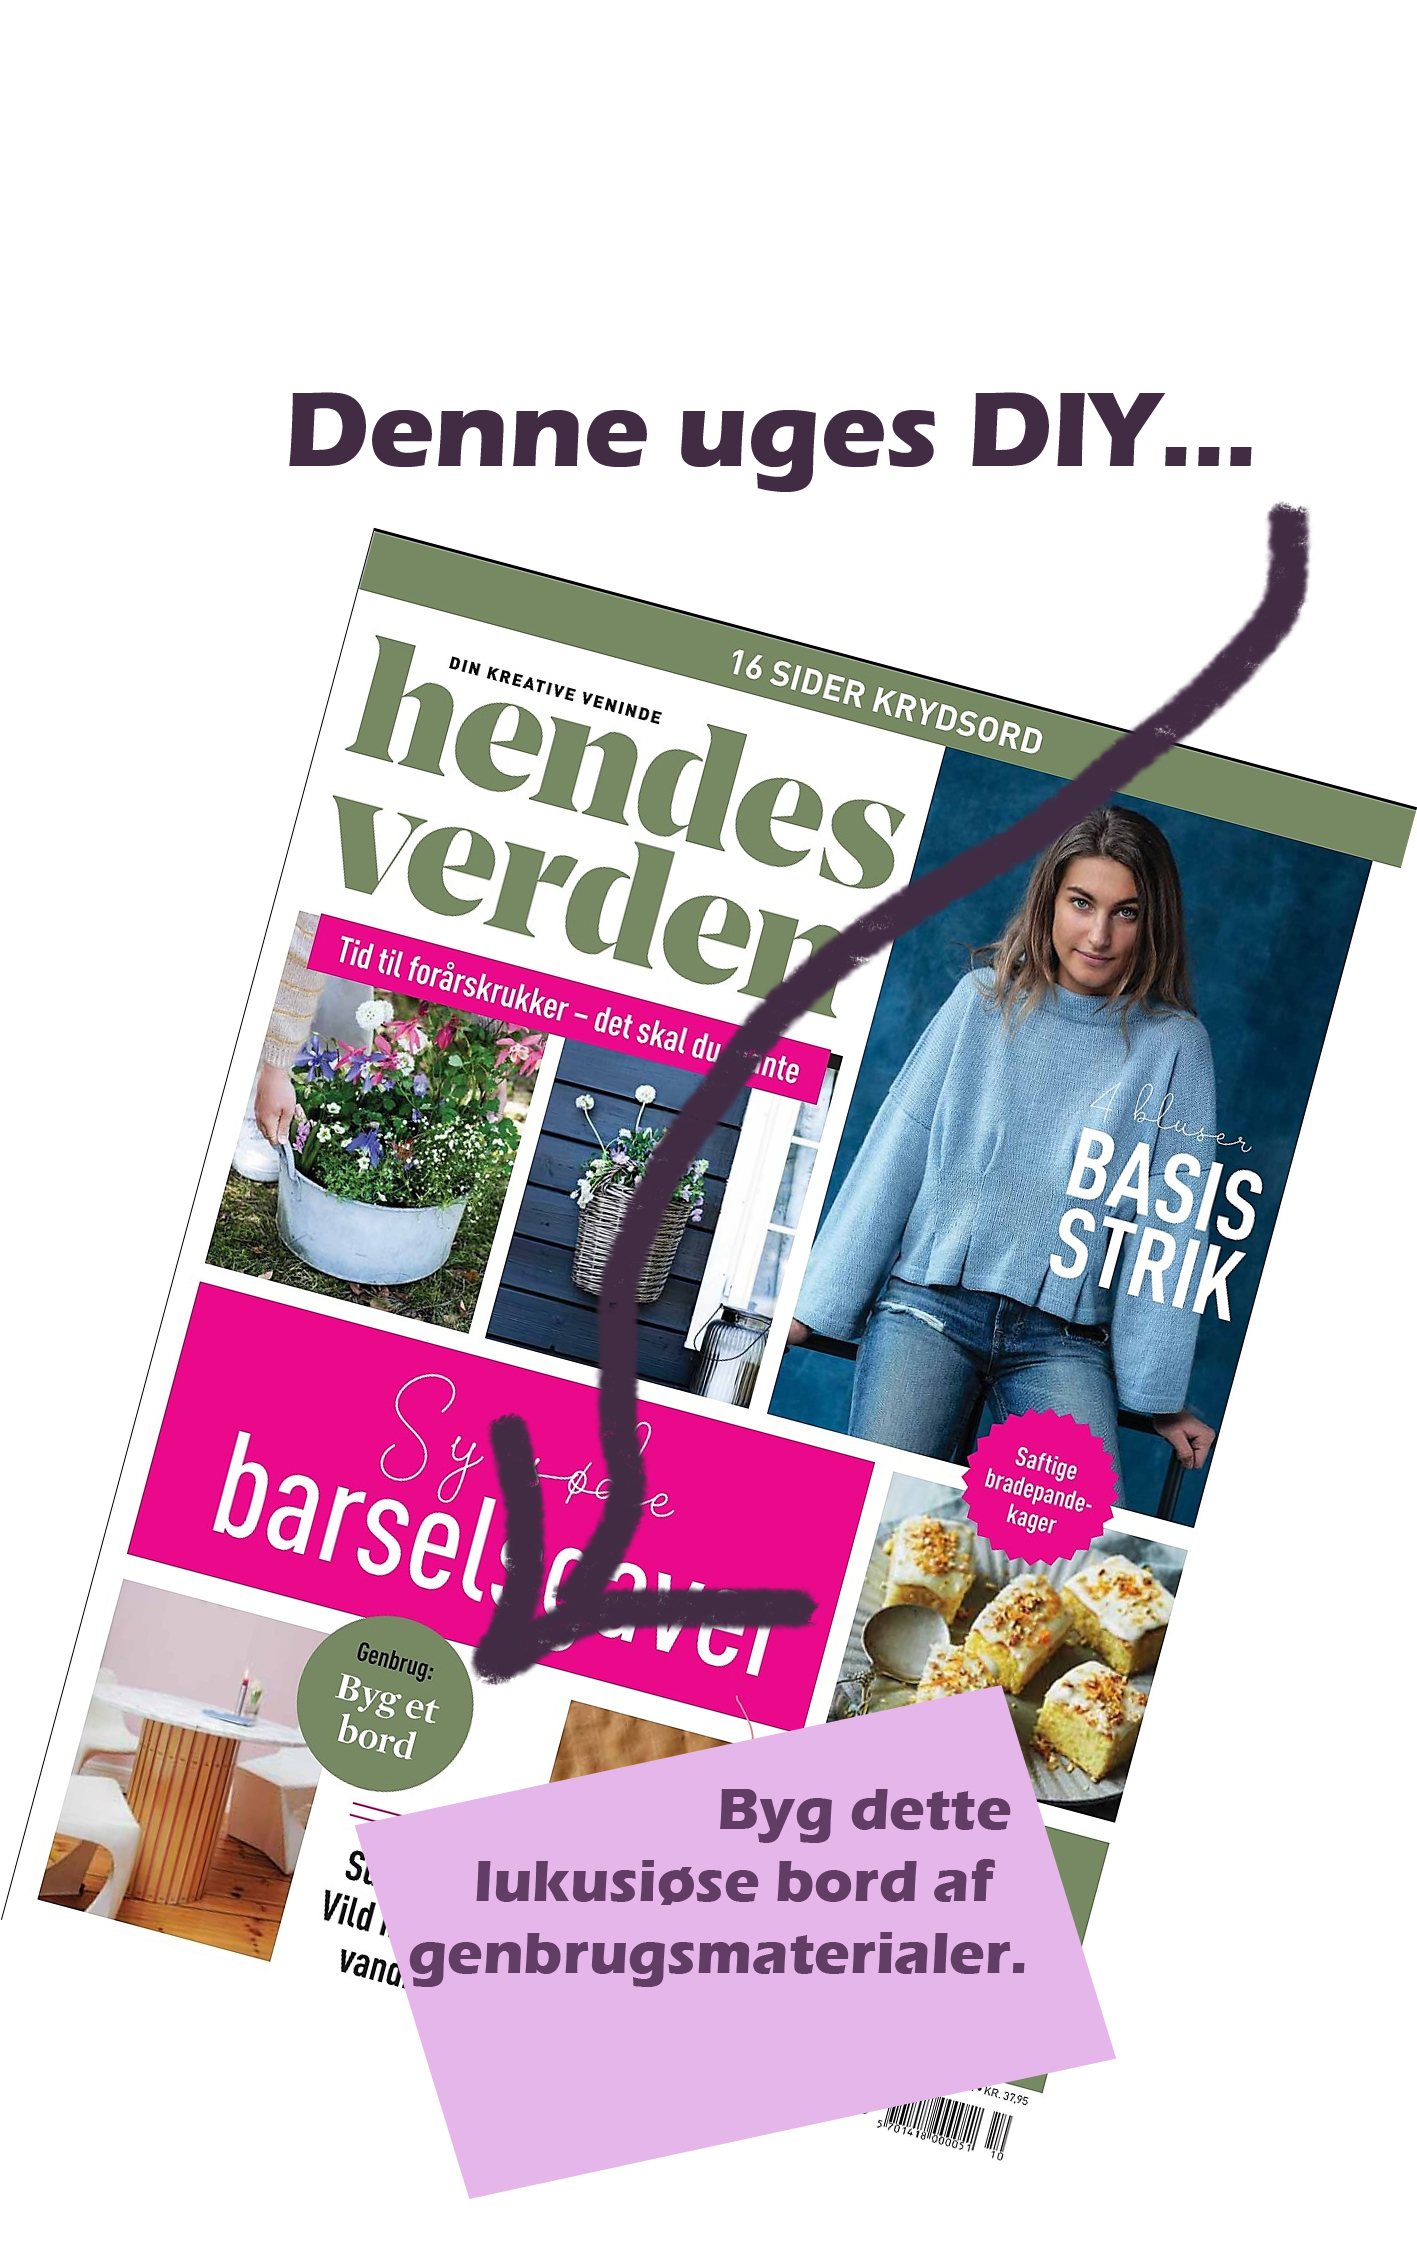 The cover of this weeks Hendes Verden with my DIY on frontpage.